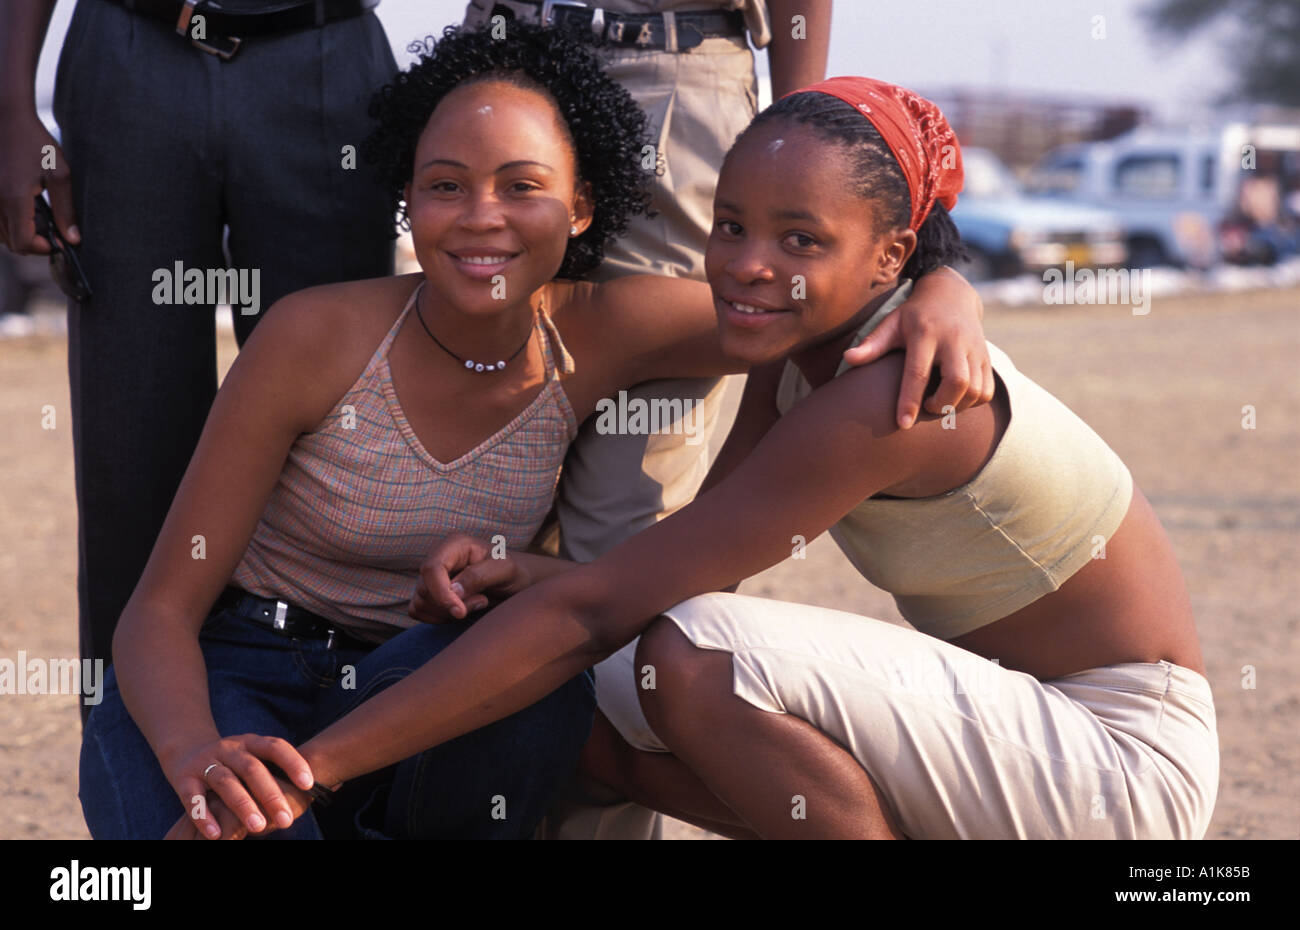 Friendly local girls pose for a photo People flock to the MaHerero Day festival August Okahandja Namibia Stock Photo